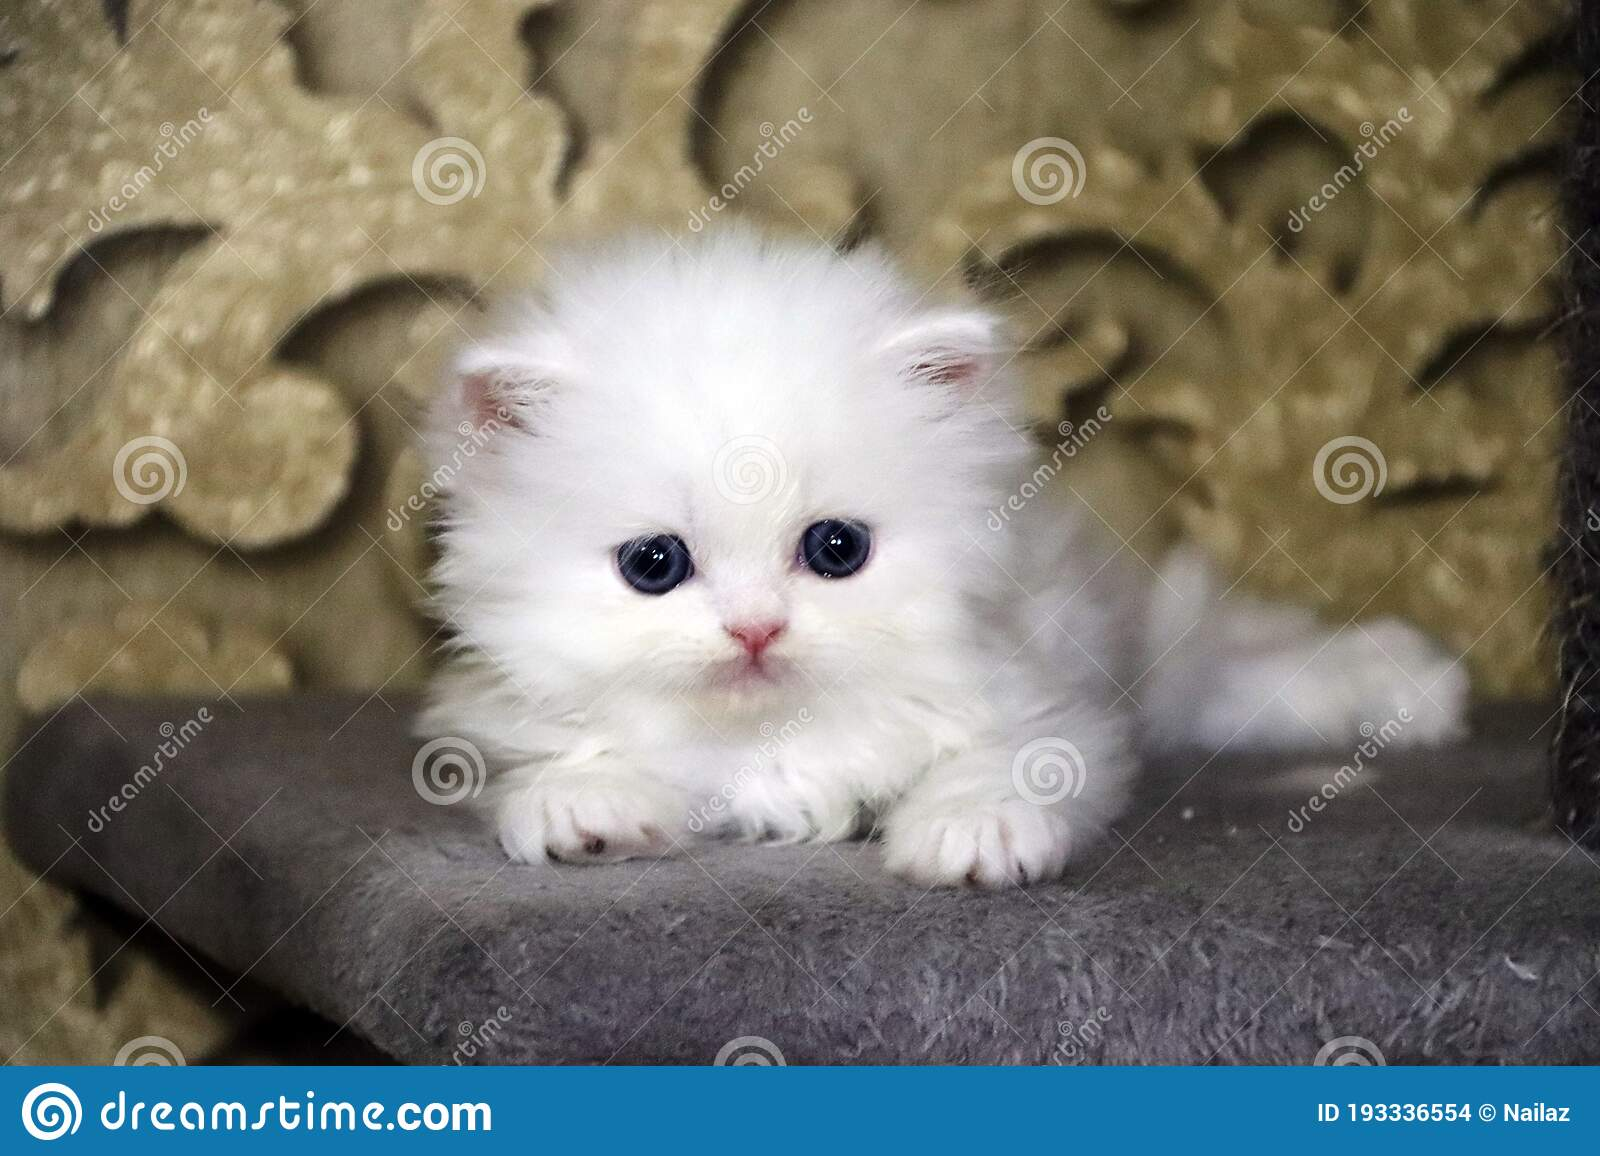 Kitty Cat Picture photo 4